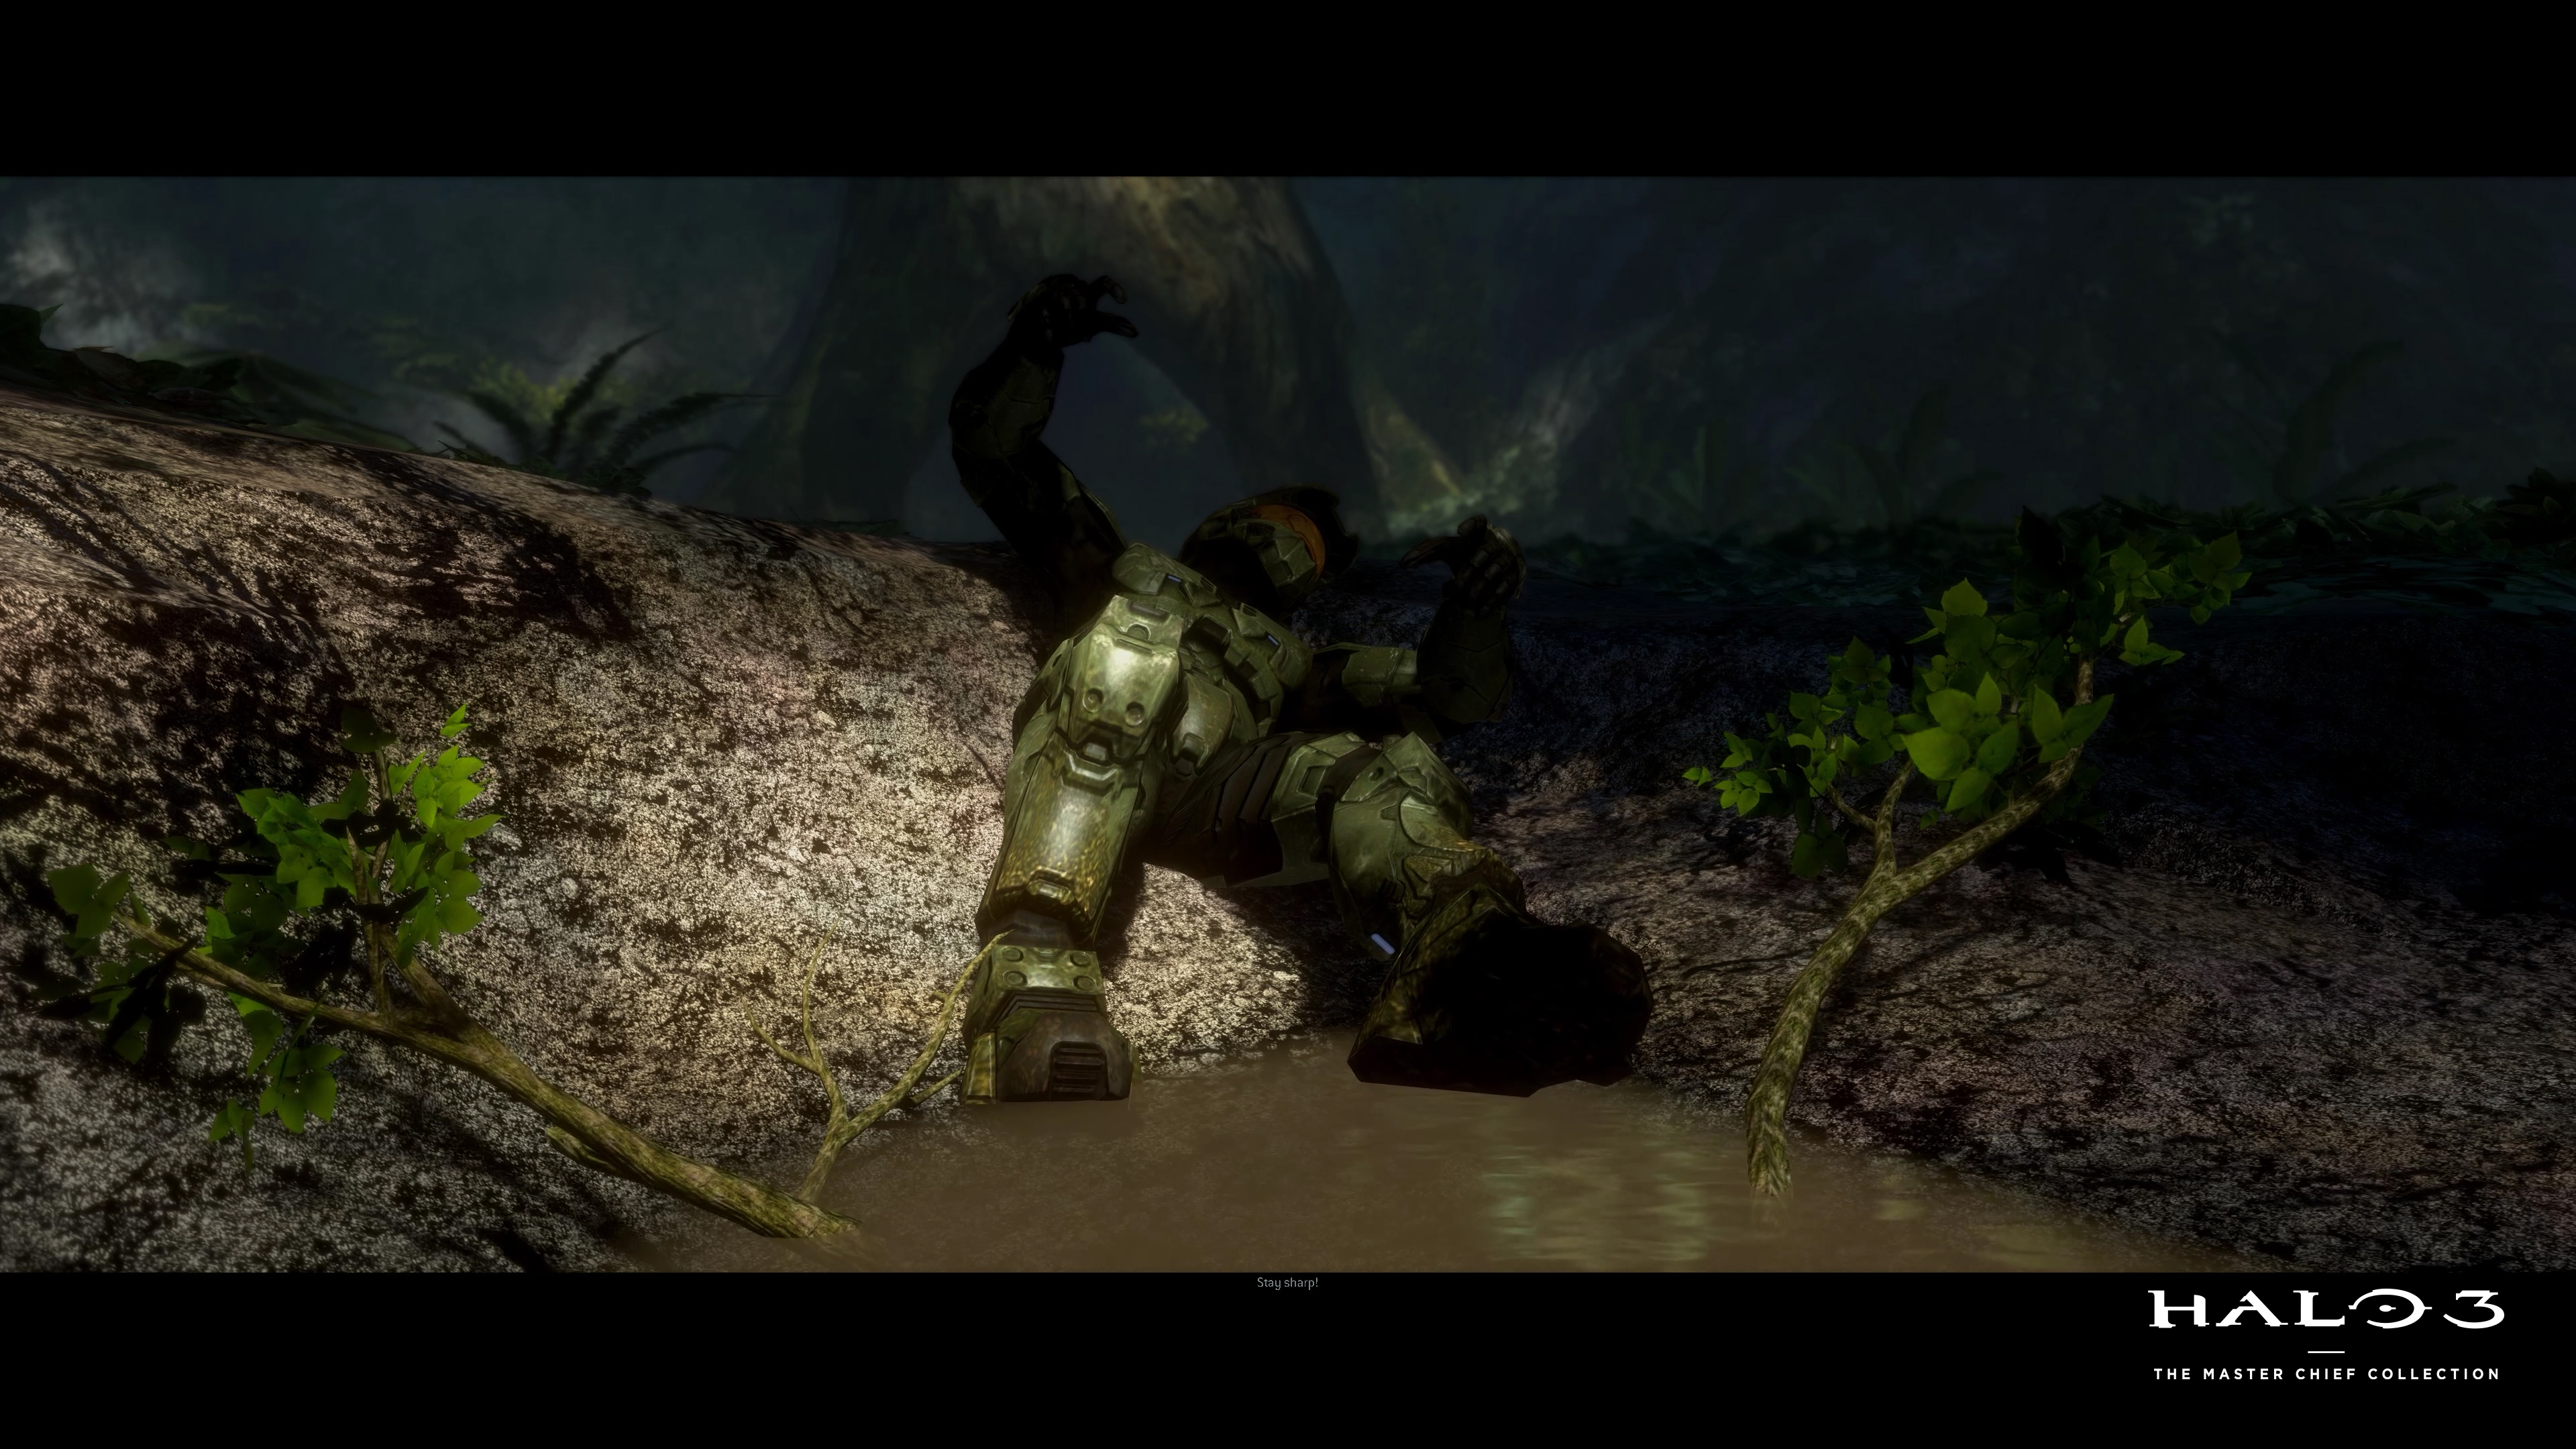 halo-master-chief-collection-2020_halo3_